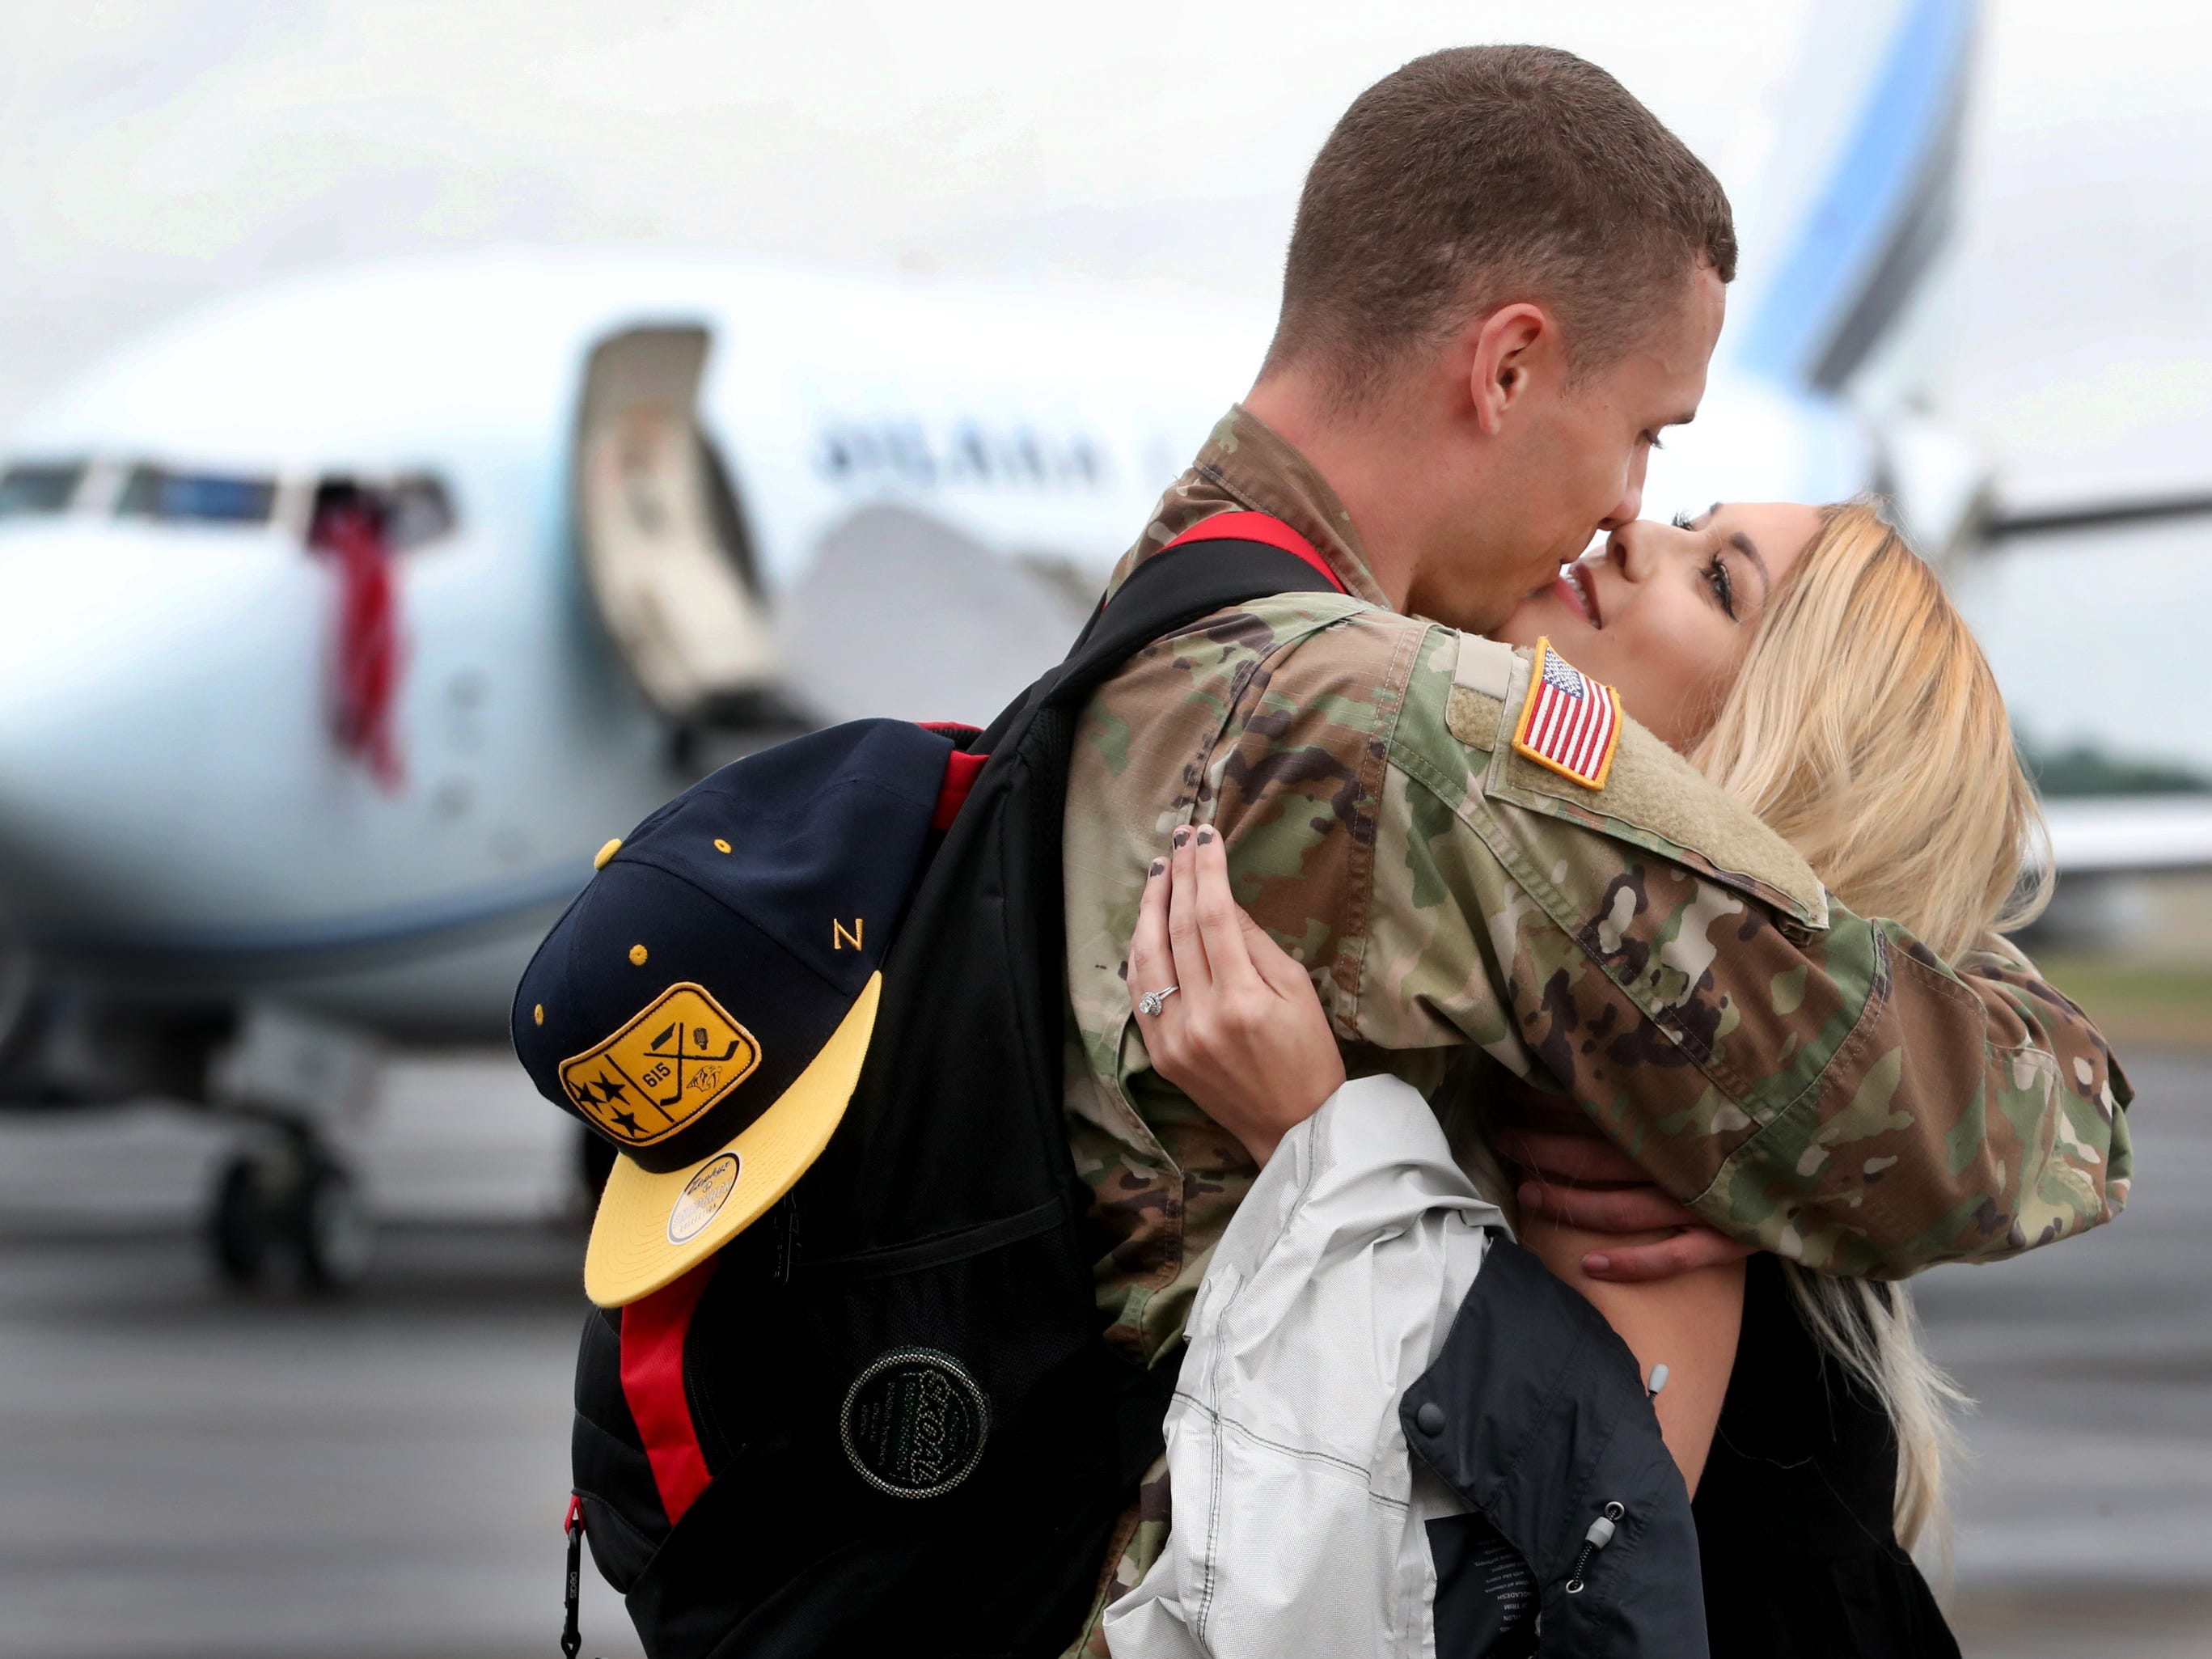 Samantha Whittaker kisses her fiance Sgt. Wendal Asberry, with the 278th ACR, after he returned to the Volunteer Training Site in Smyrna, following a 9 month overseas deployment on Thursday, May 9, 2019.